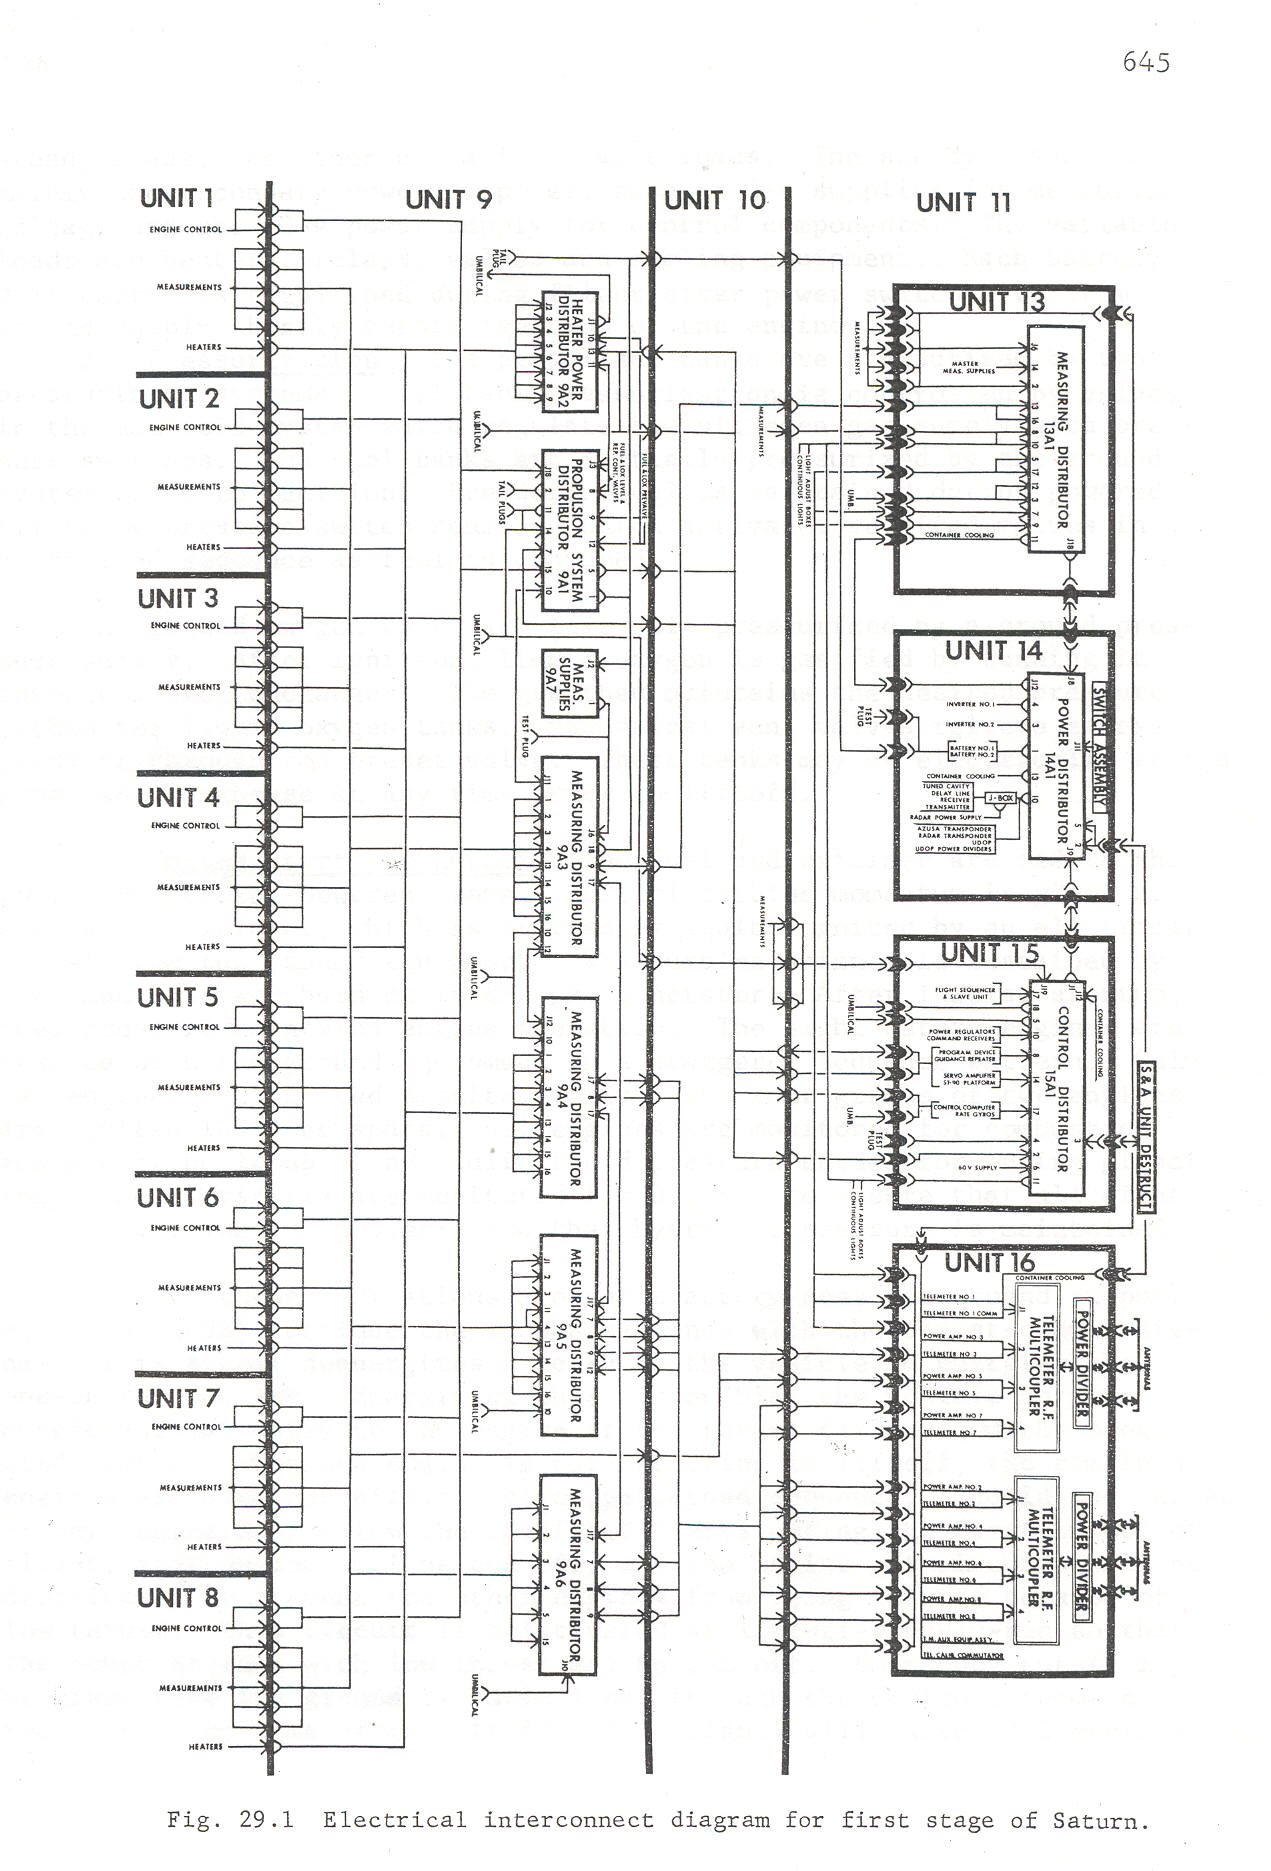 chapter    electrical systems in missiles and space vehicles   electrical interconnect diagram for first stage of saturn